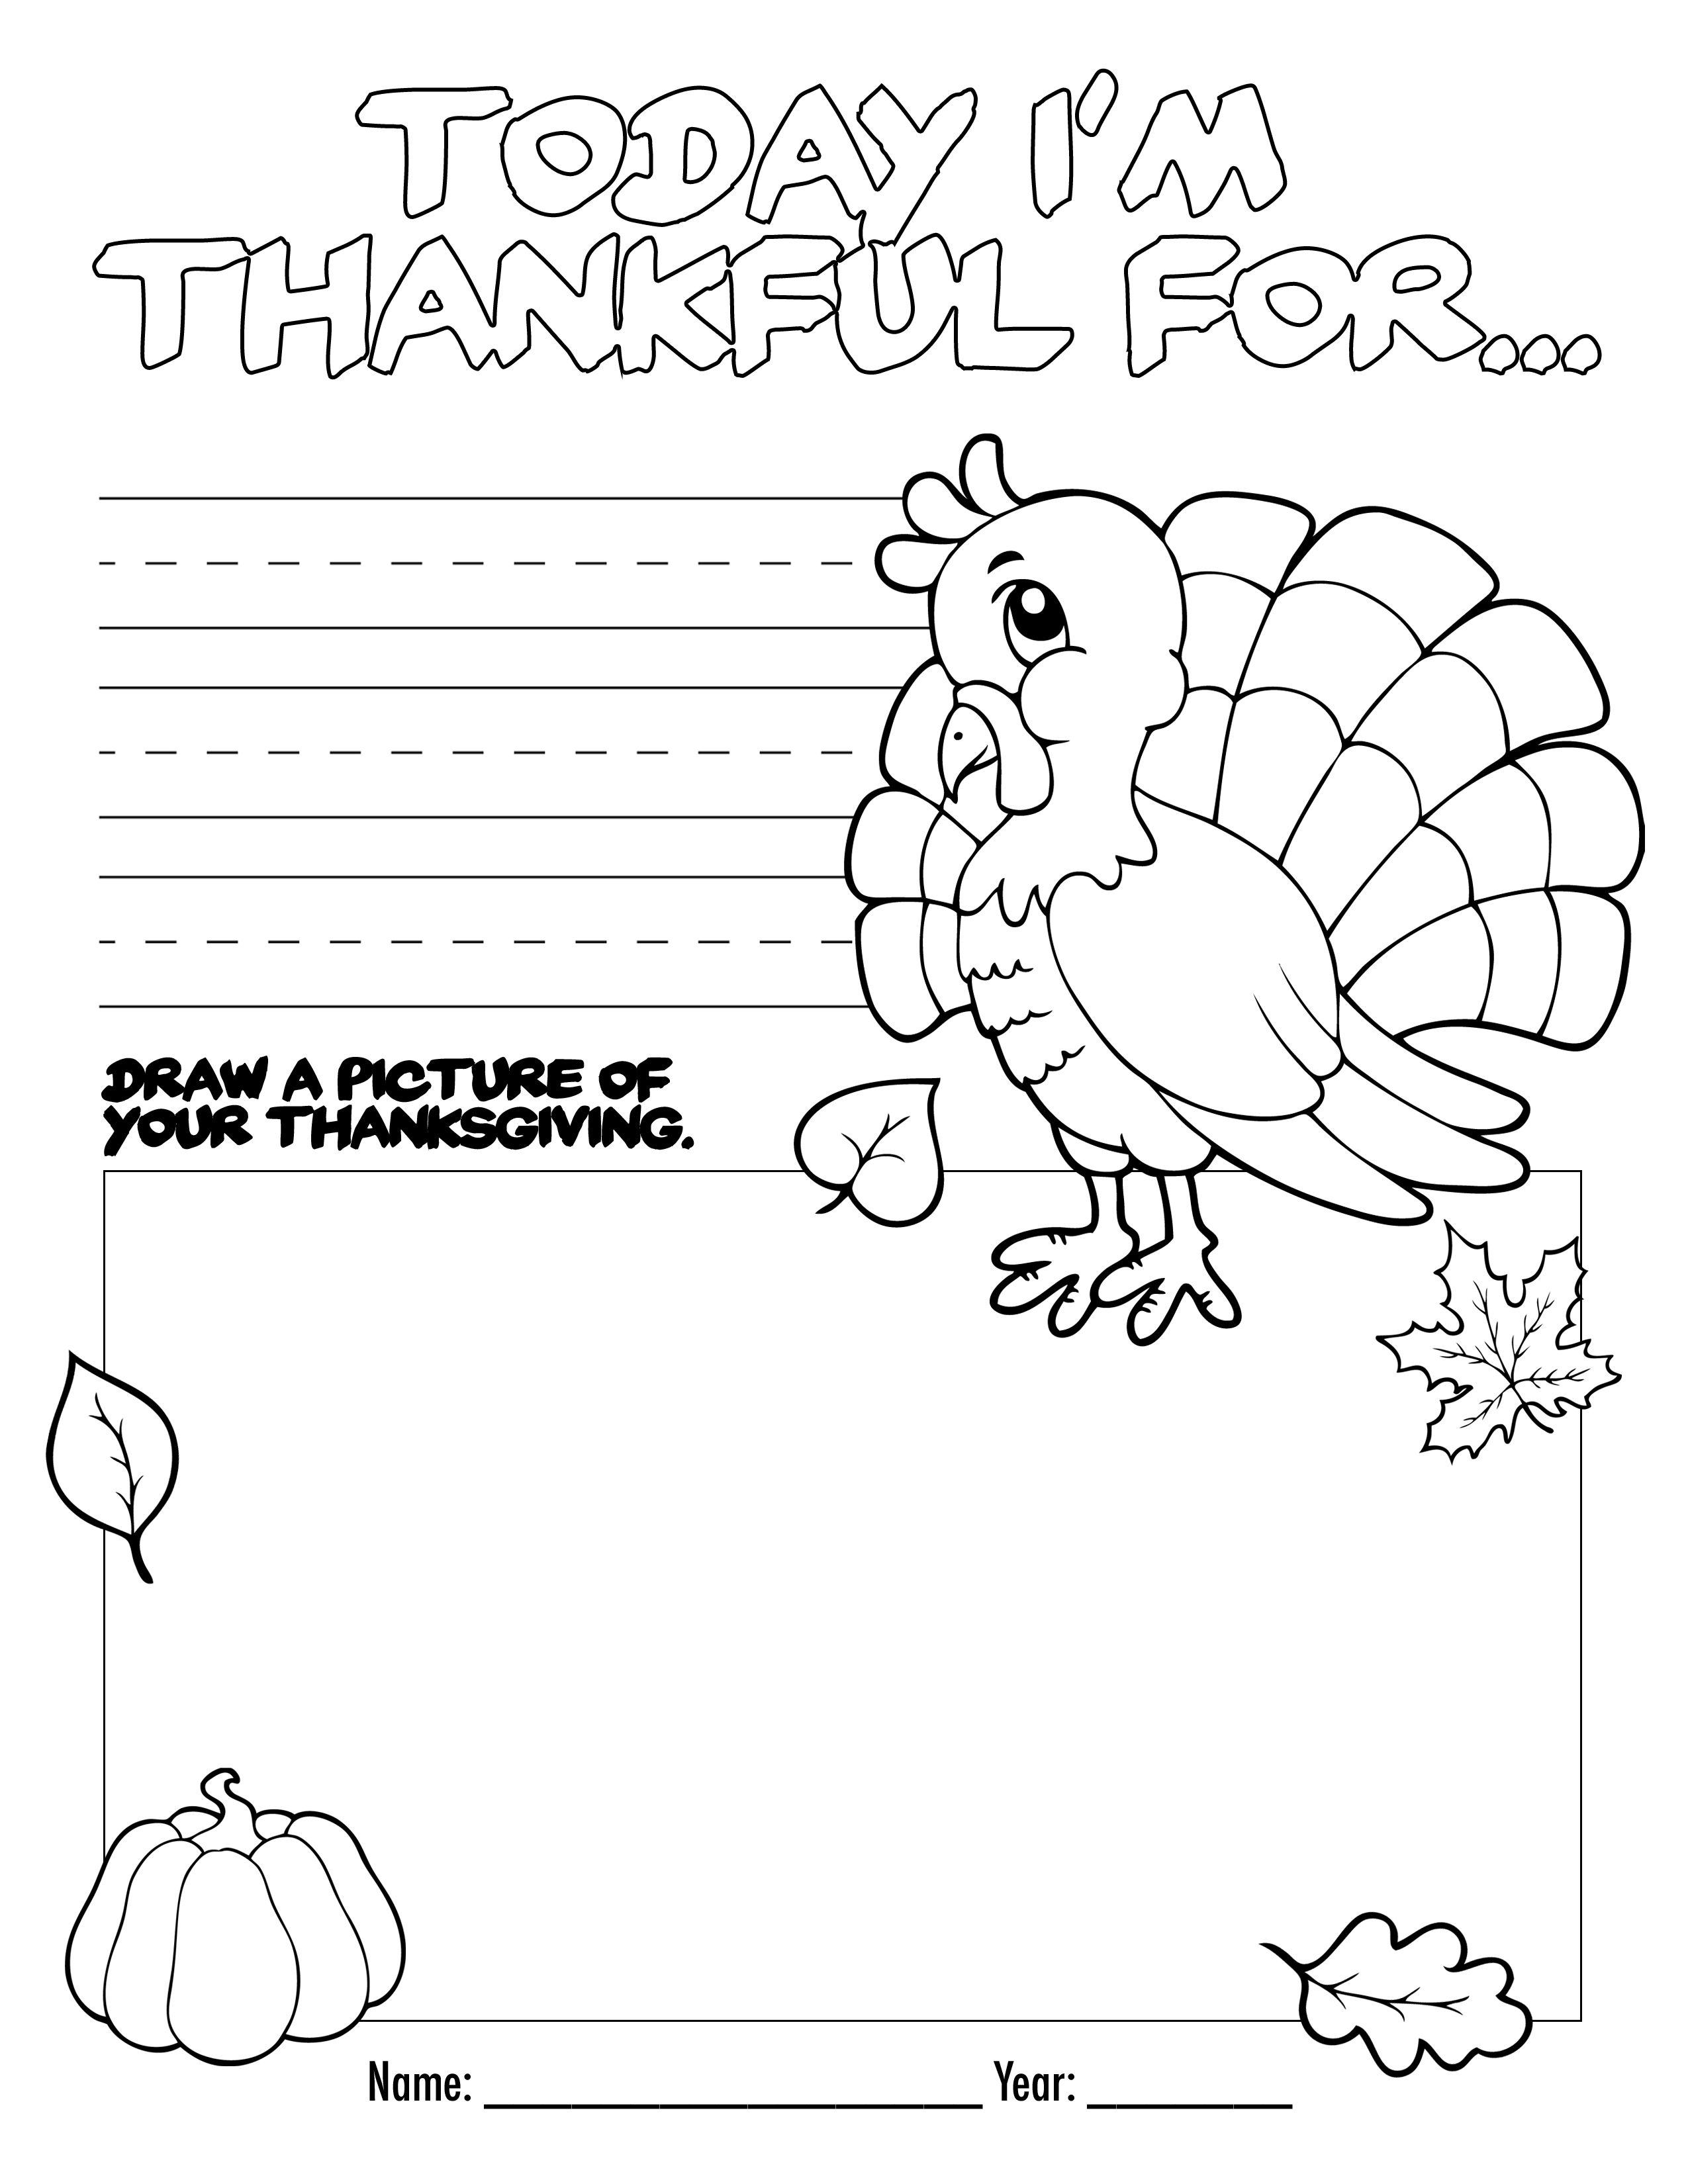 Thanksgiving Coloring Book Free Printable For The Kids! | Bloggers - Free Thanksgiving Mini Book Printable